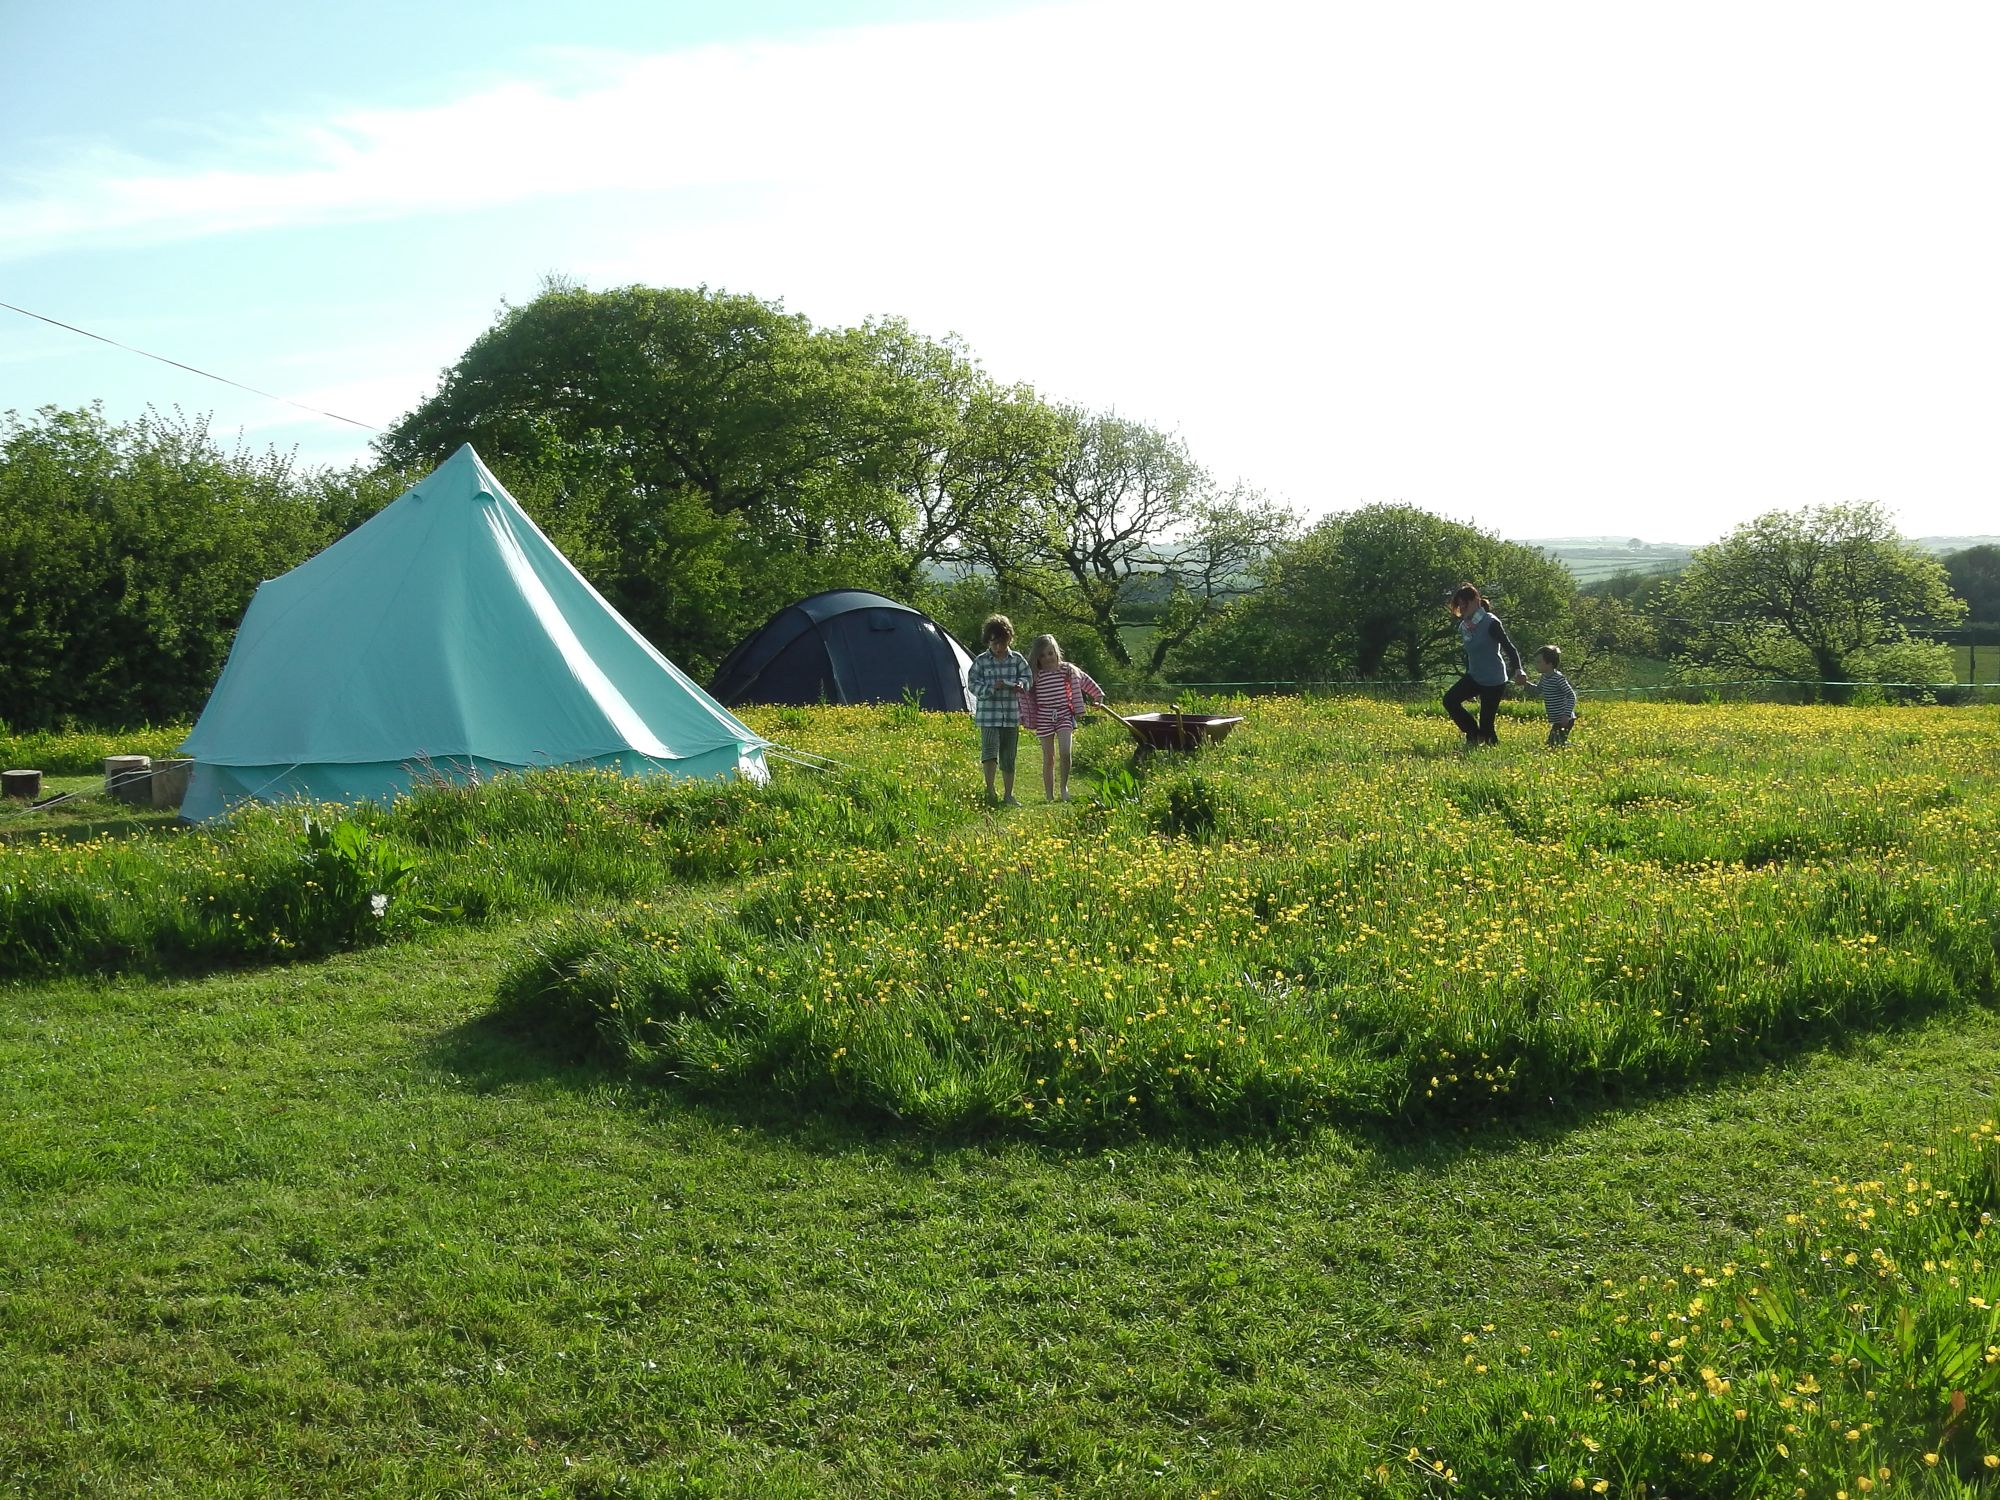 Small-scale camping and glamping on a 33-acre Cornish farm with separate meadows ensuring space, peace and privacy.